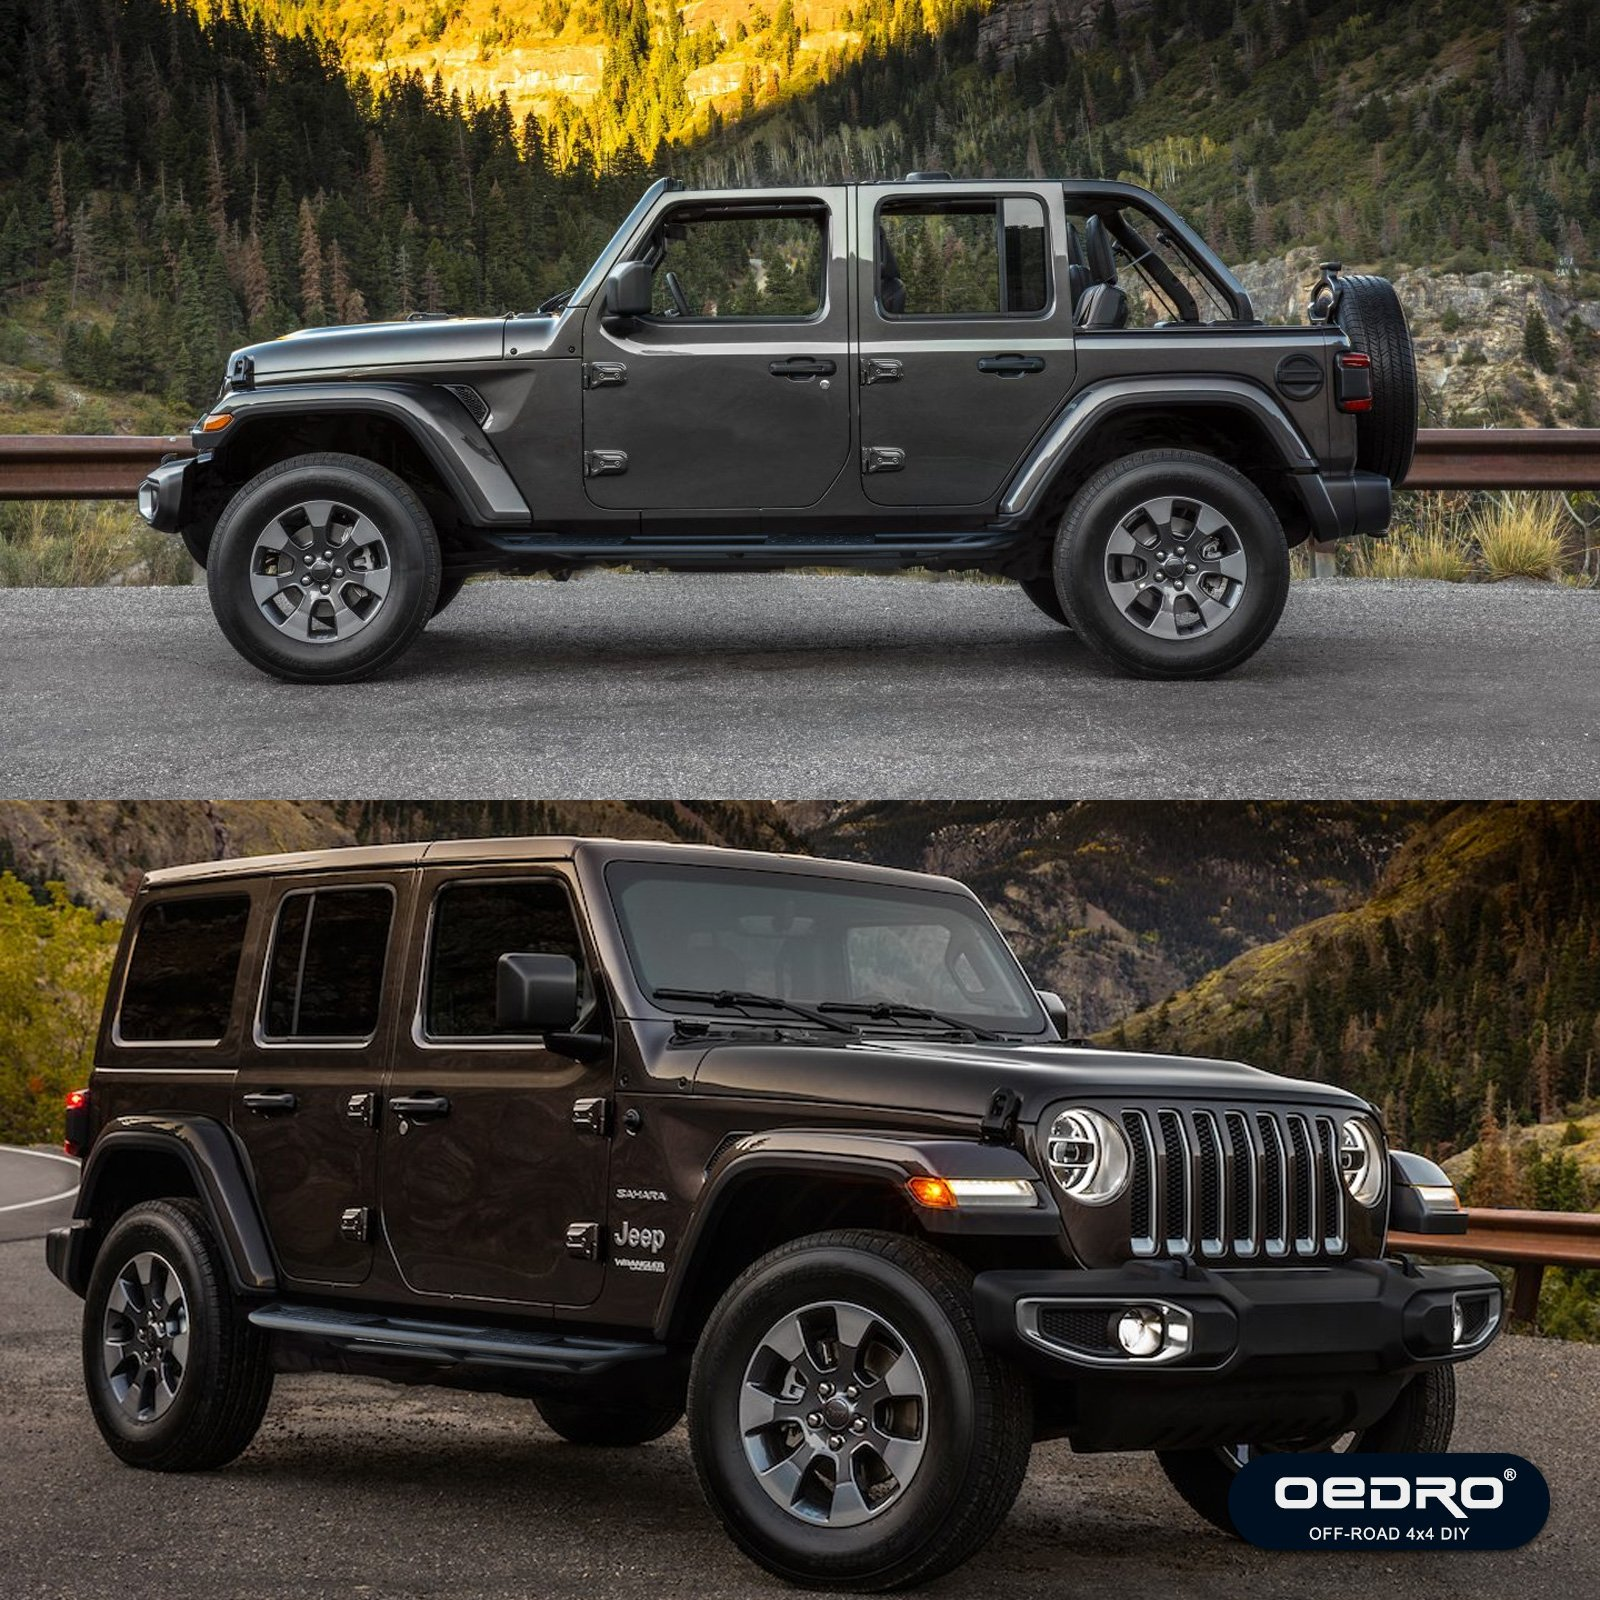 Oedro Side Step Guardian Kit Compatible For 2007 2018 Jeep Wrangler Jk Running Boards 4 Door Unique Multi Layer Slip Proof Corrosion Protection Upgraded Textured Black